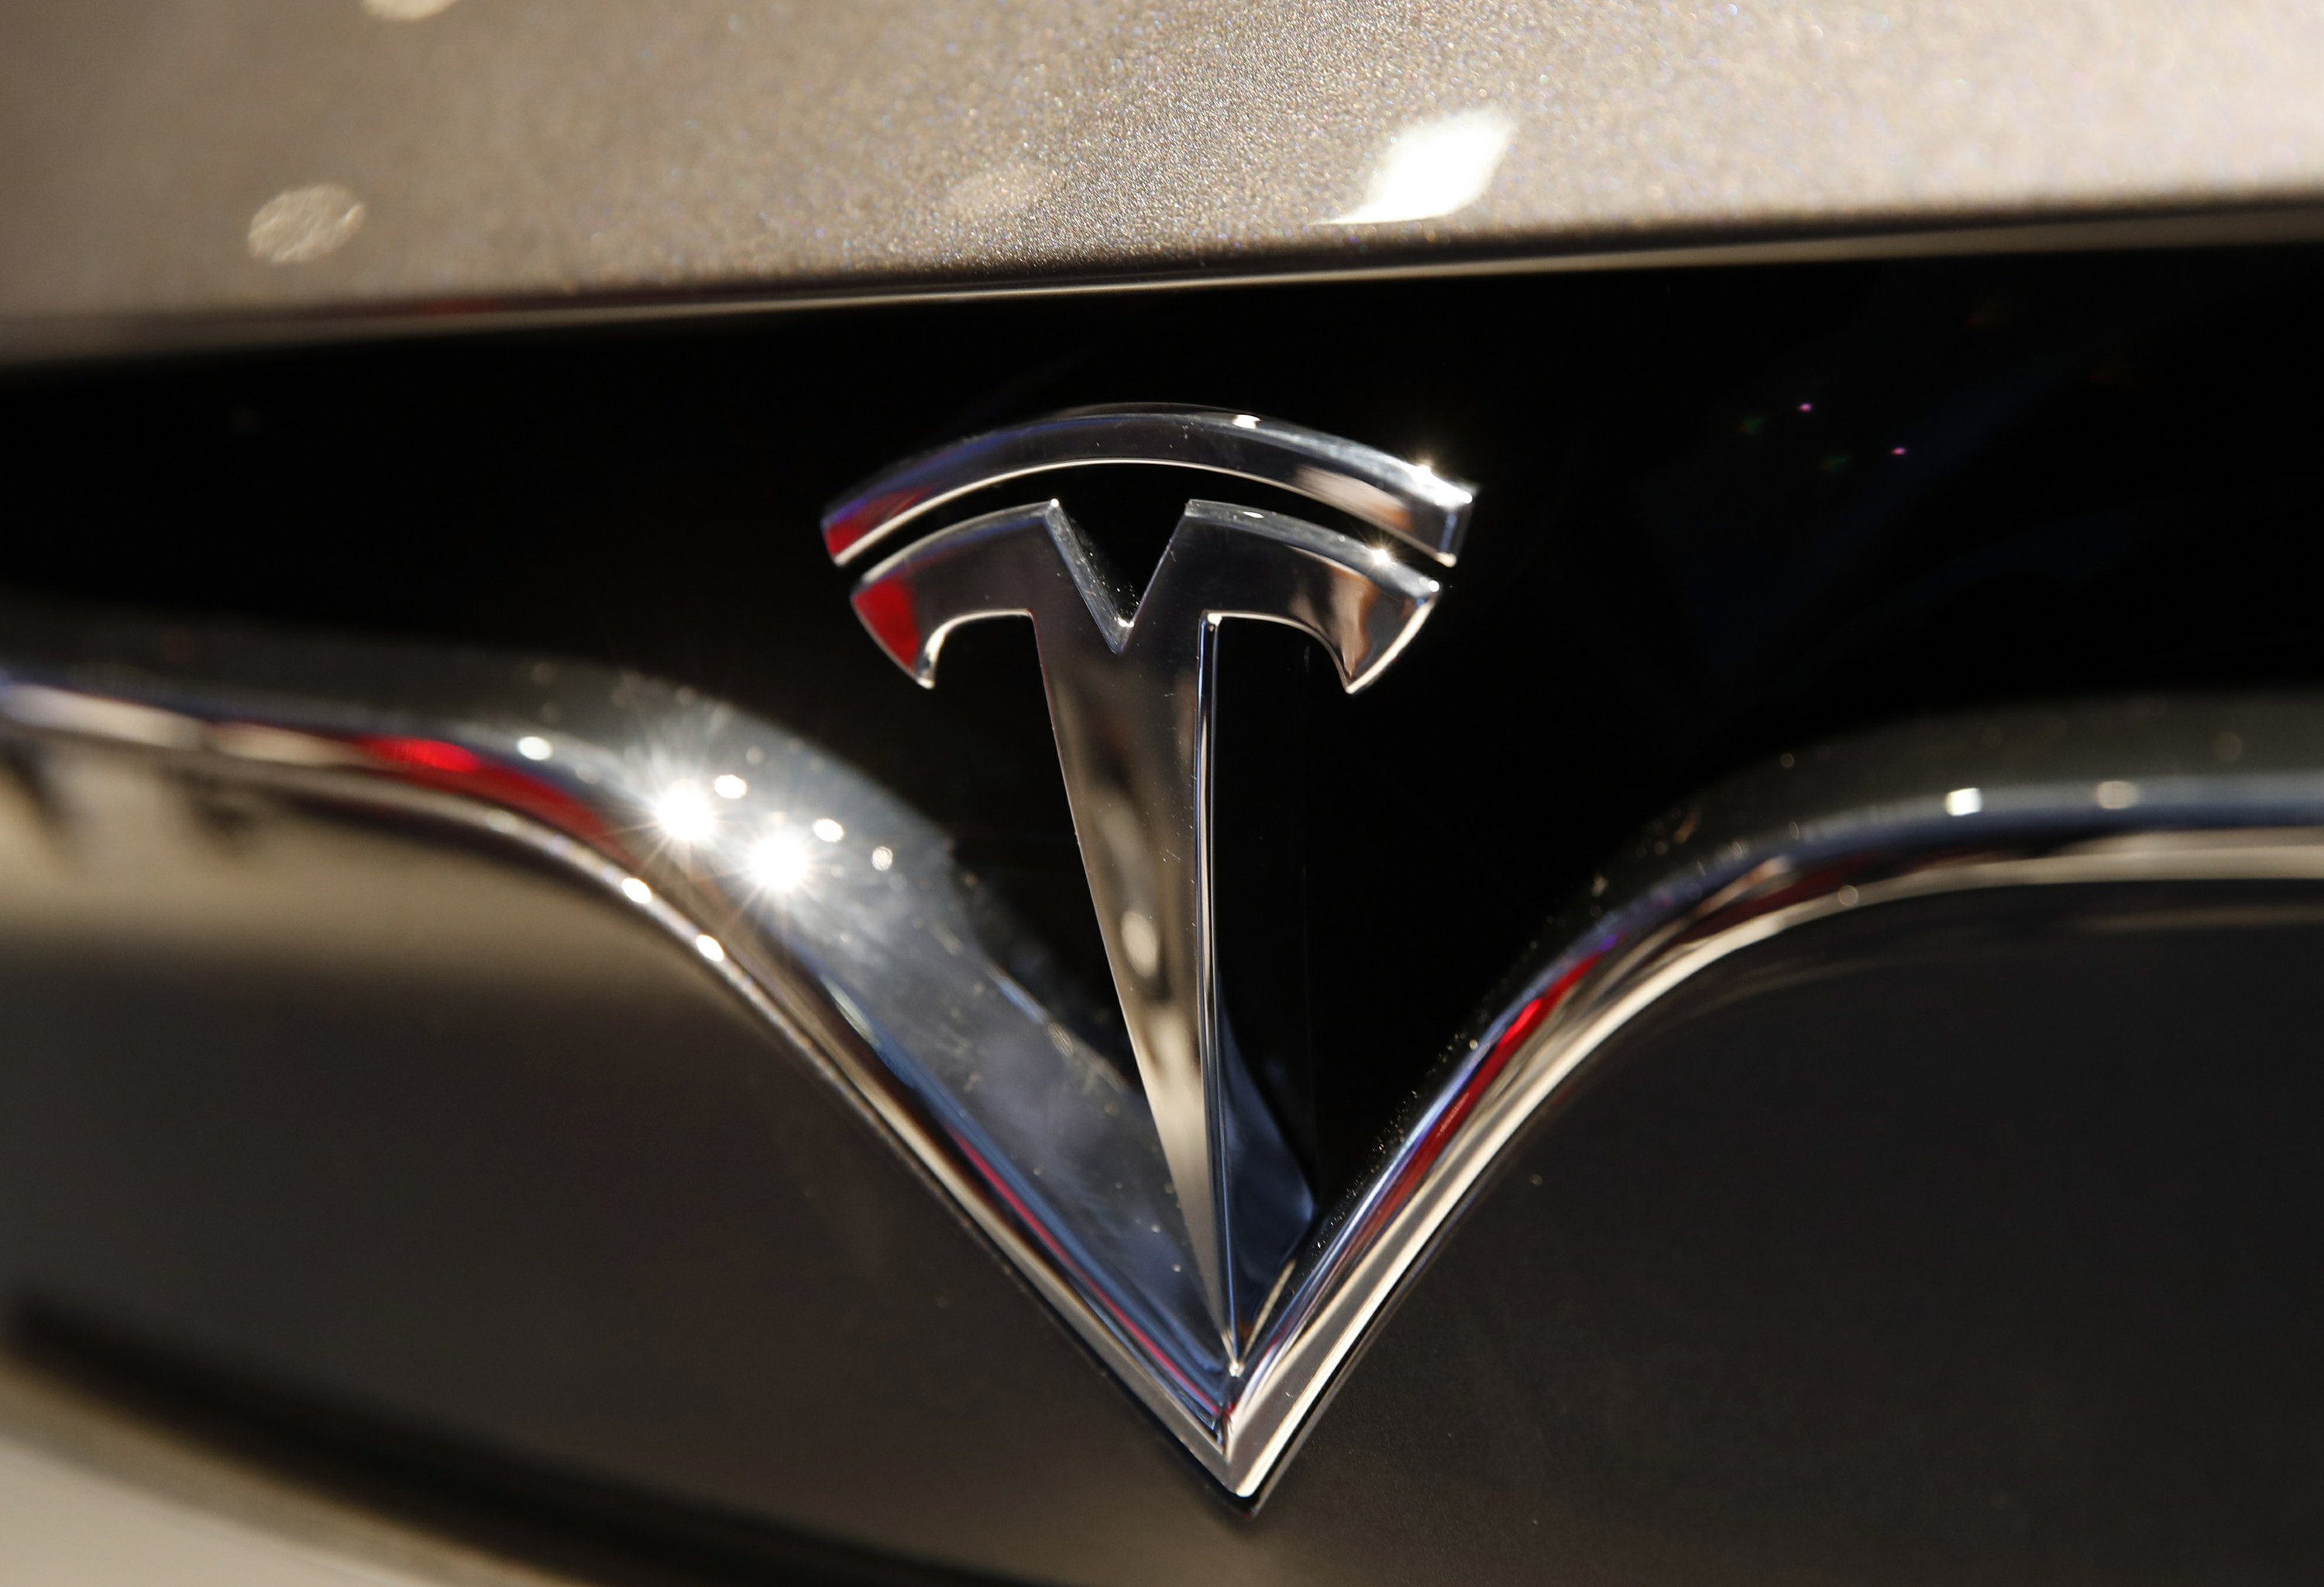 apnews.com - Michael Liedtke - Tesla gears up for fully self-driving cars amid skepticism